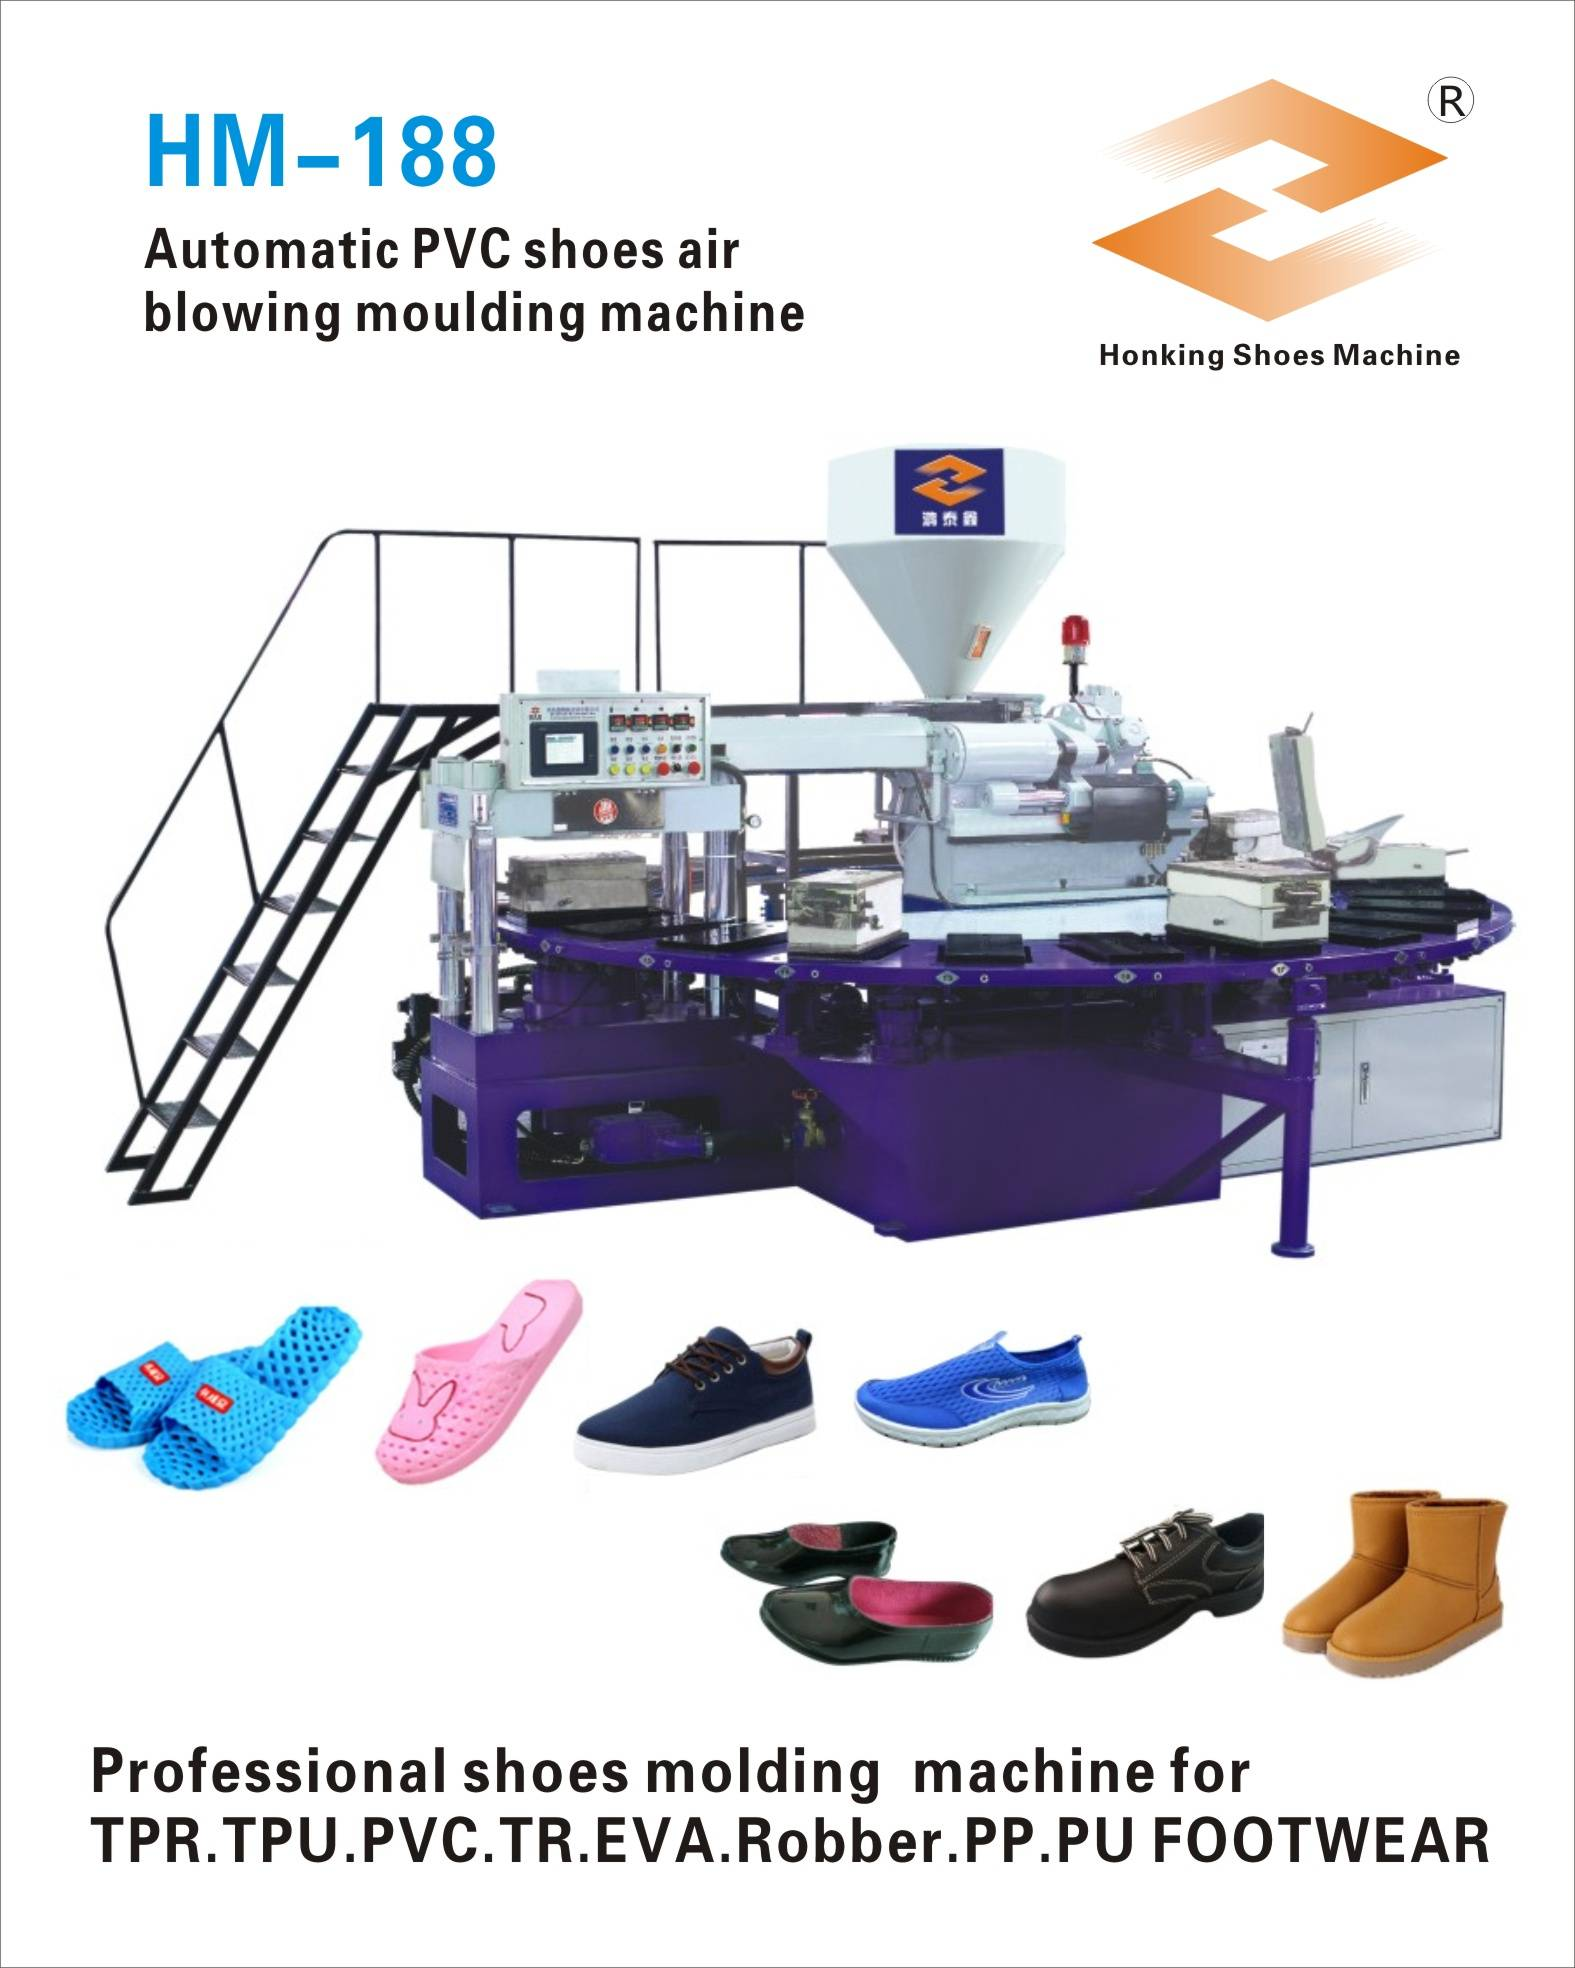 HM-188 Rotary PVC air blowing slippers making machine